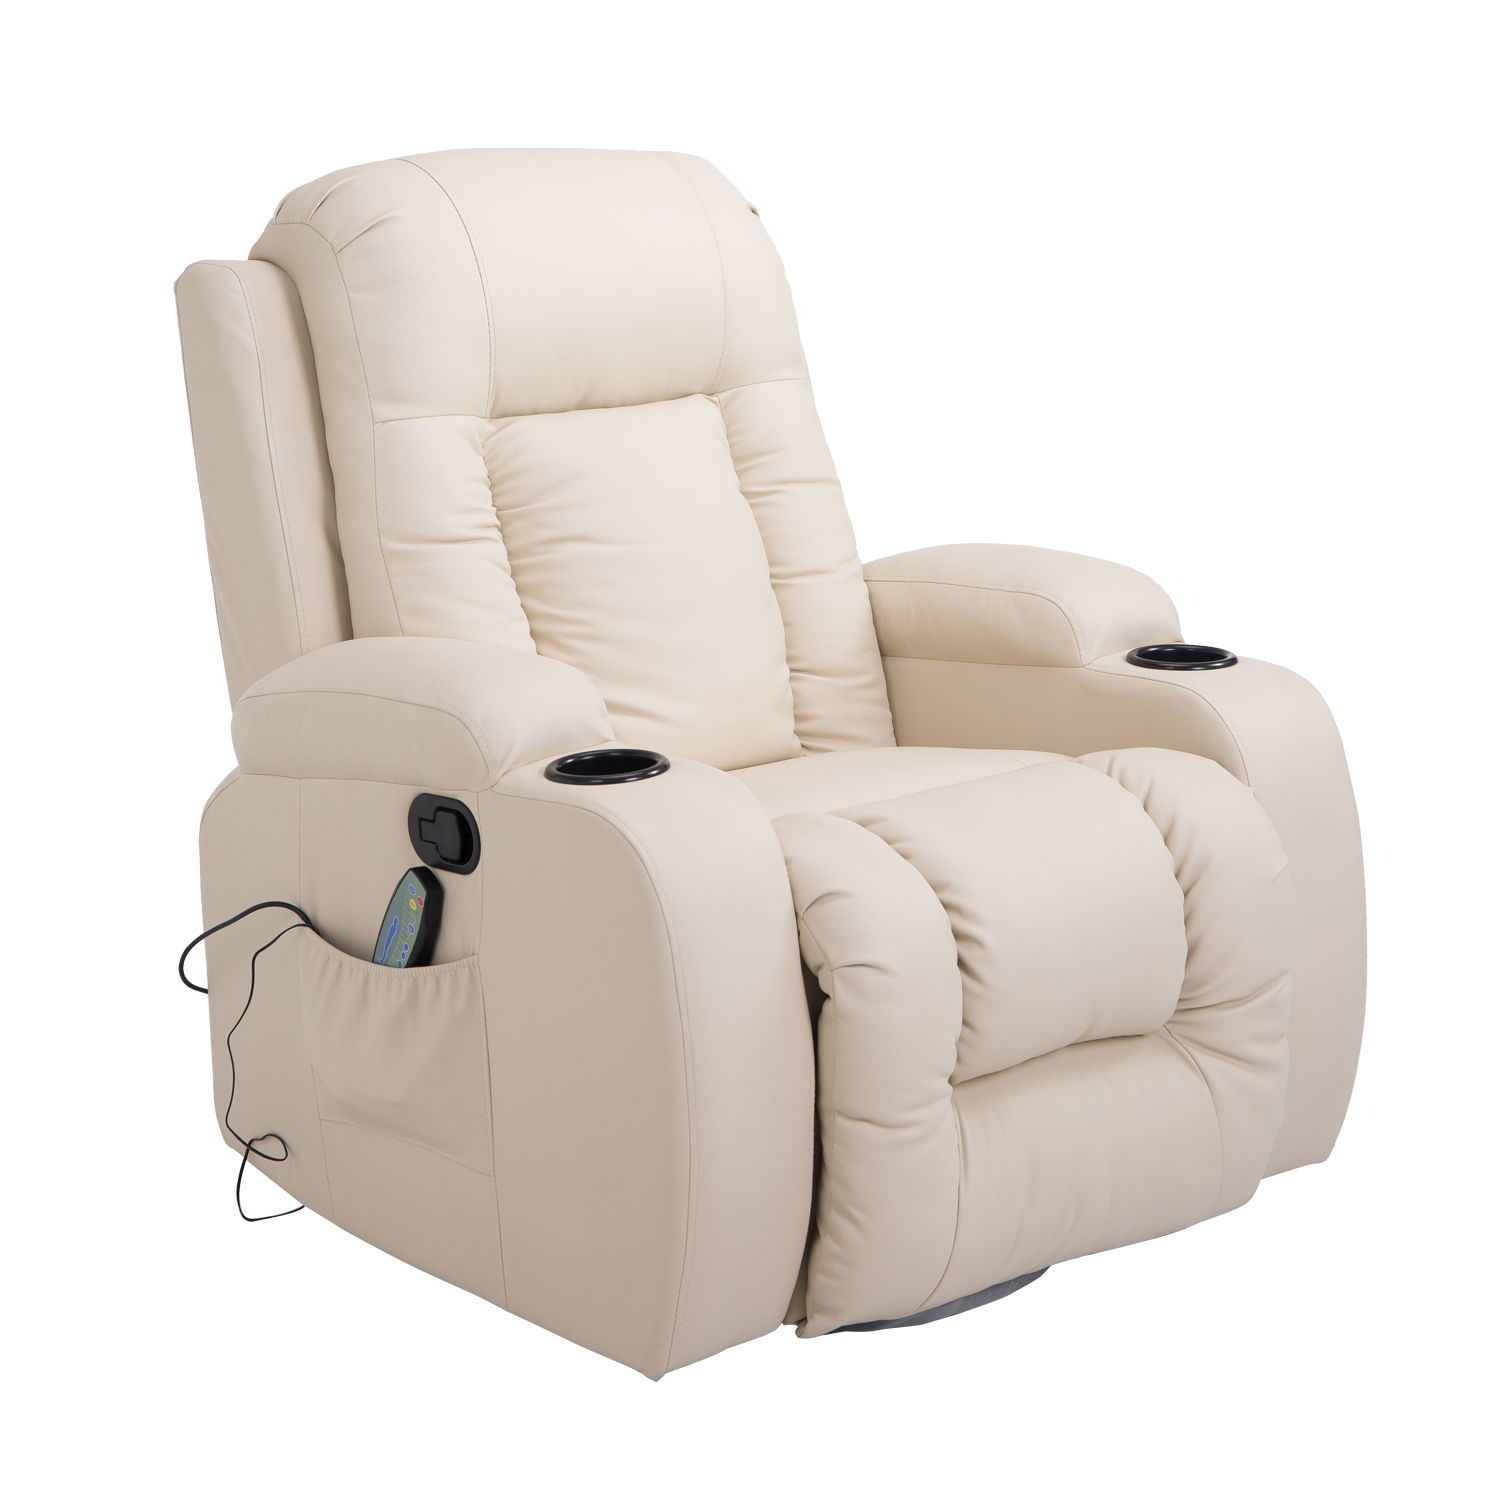 Electric Rocking Chair Massage Sofa Chair Recline Rocking Armchair Lounge Heated